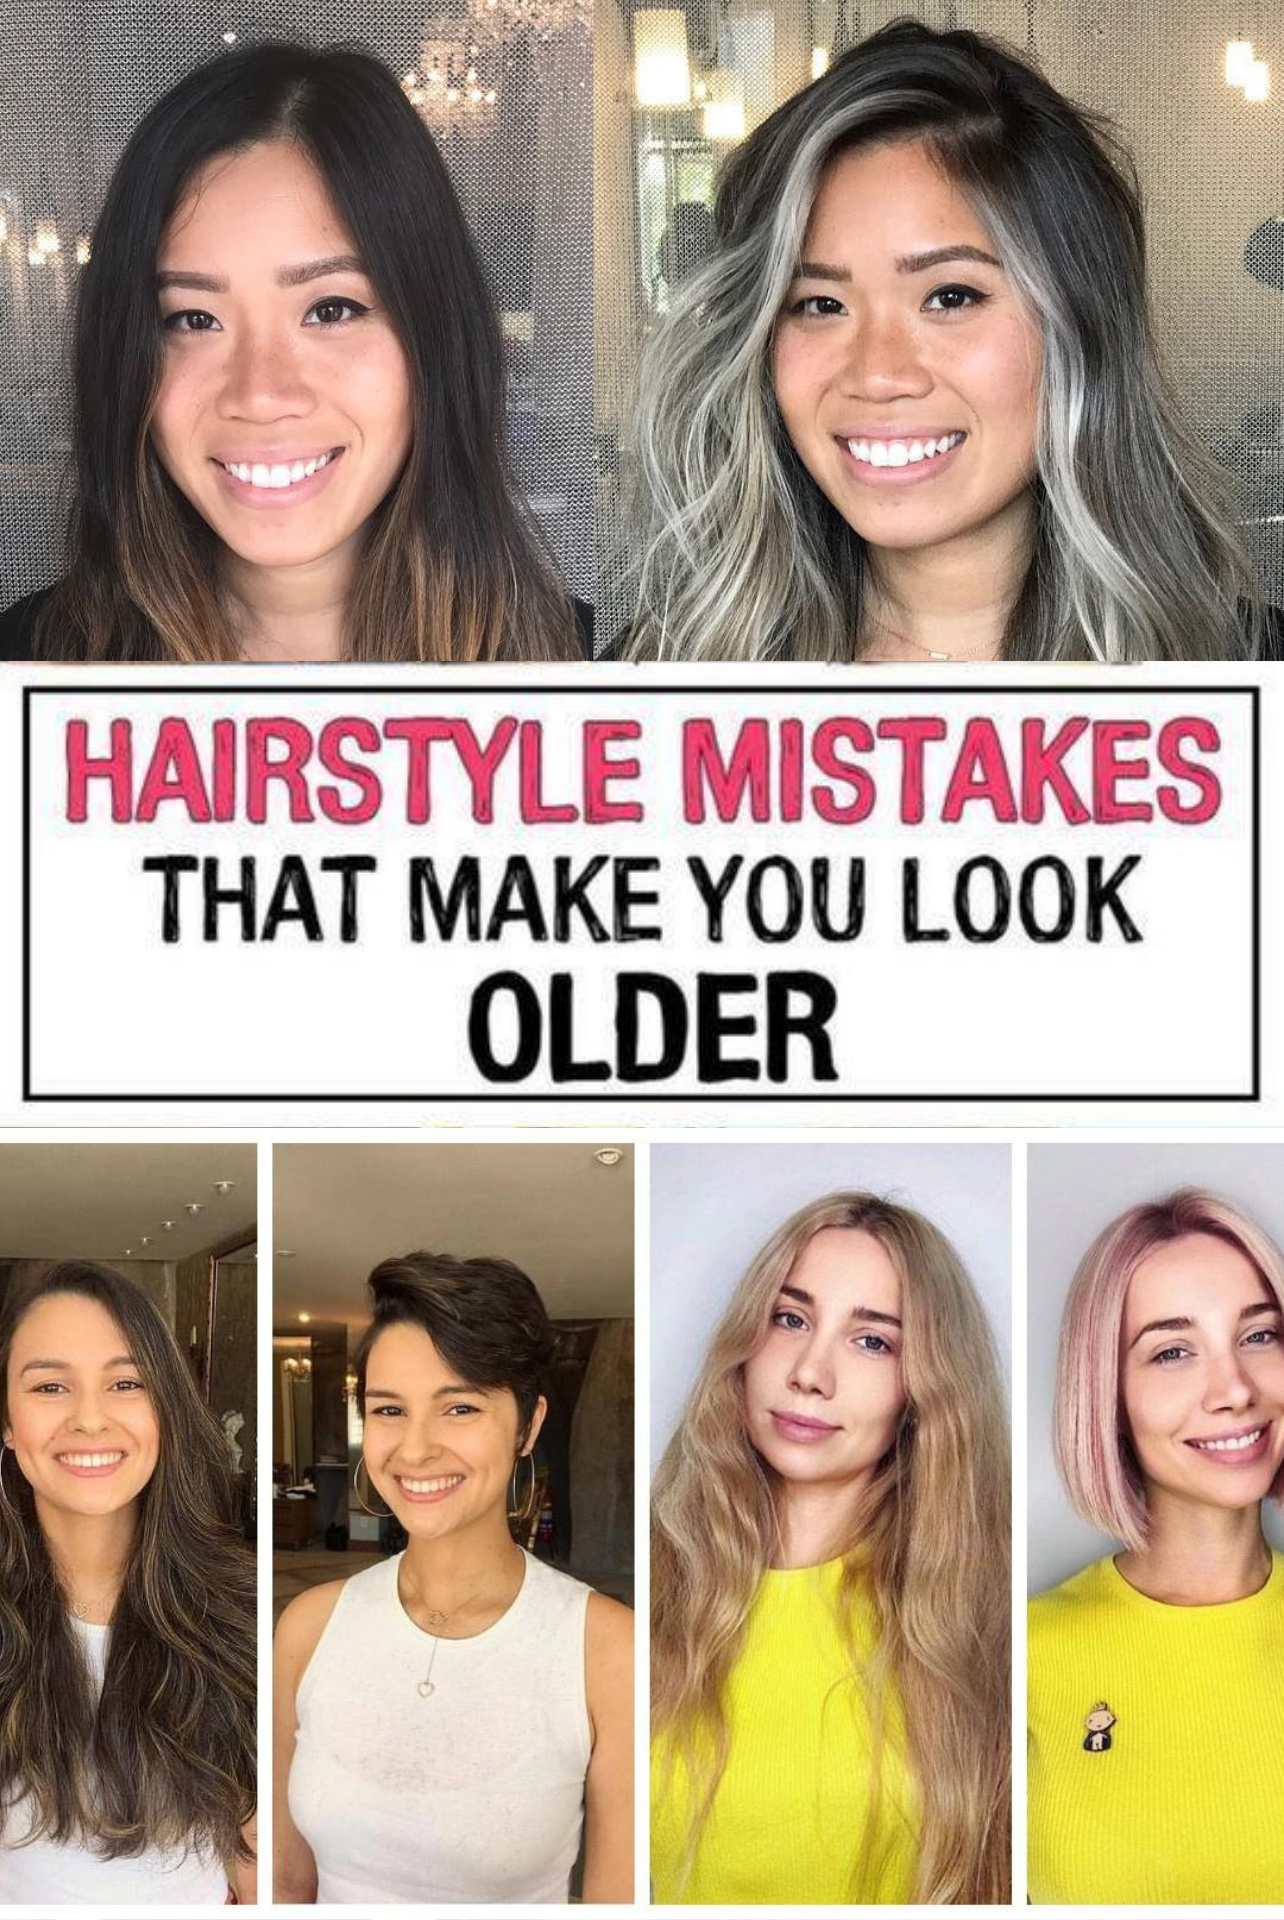 37 Hairstyle Mistakes That Are Aging You In 2020 Hair Tips To Look Younger Updated Hair Styles Hairstyle